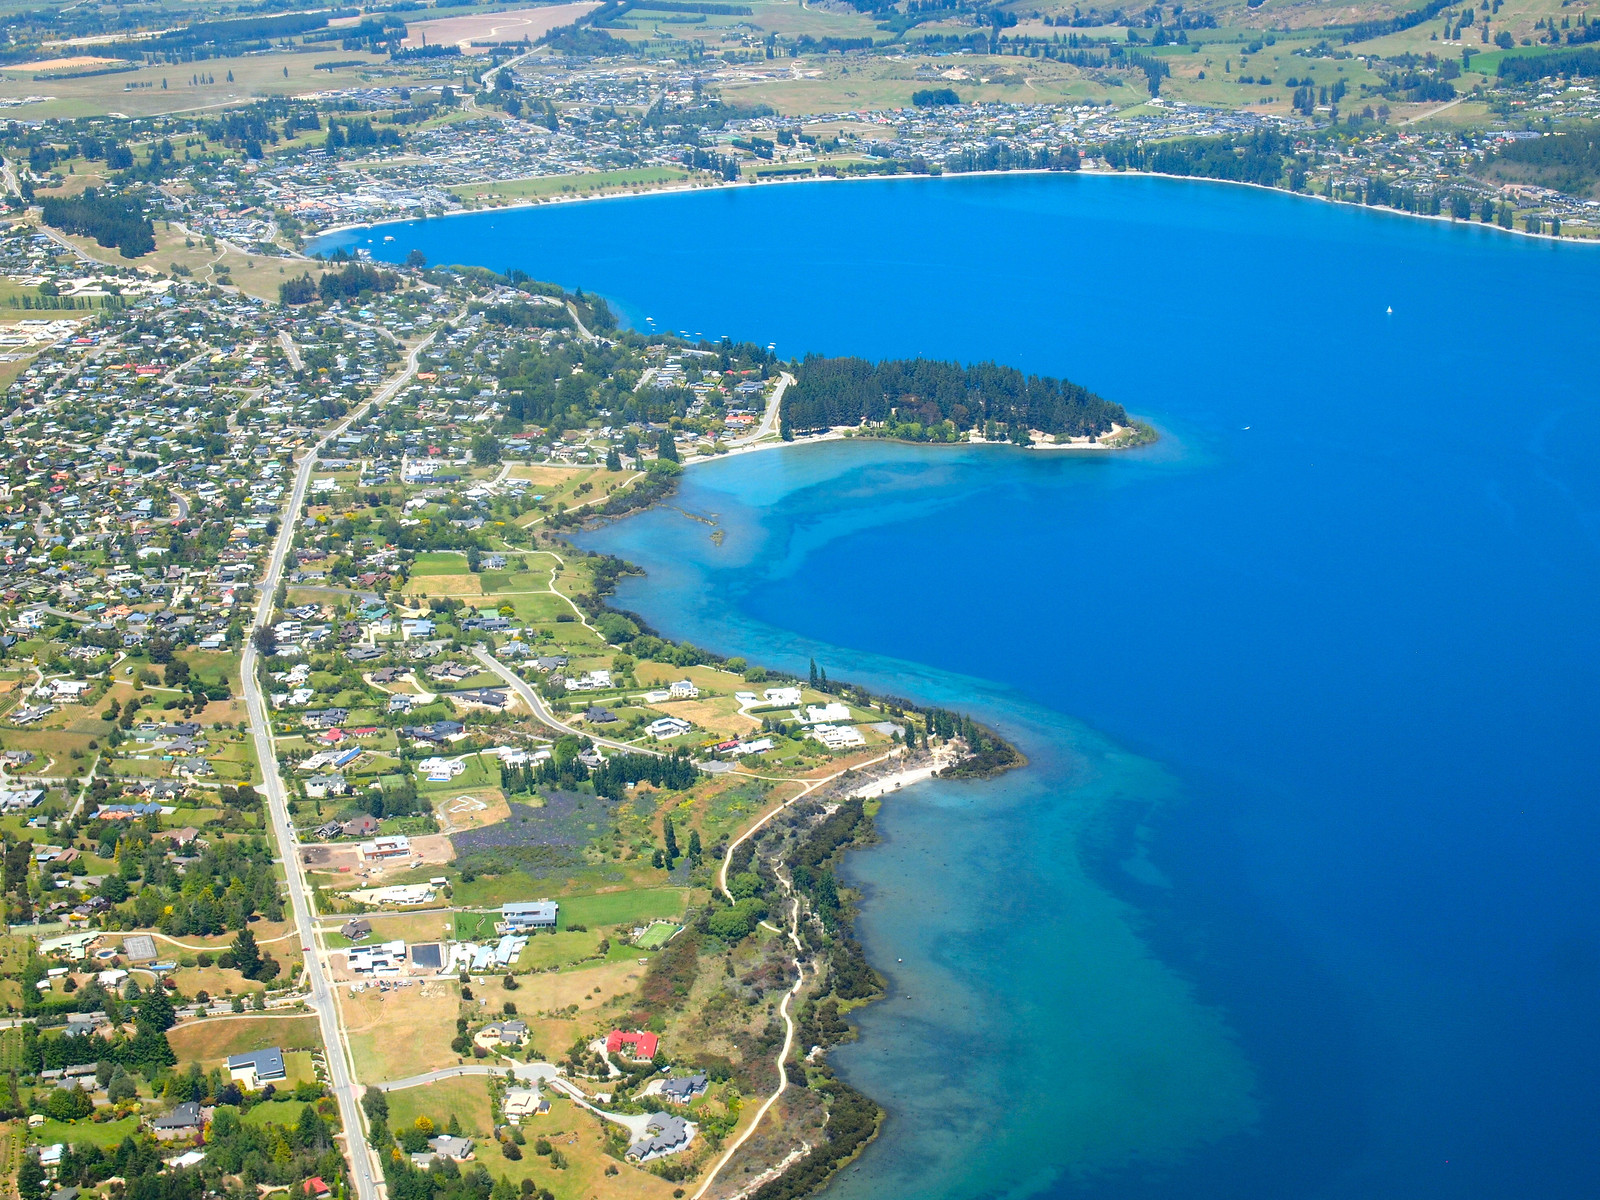 Lake Wanaka from above